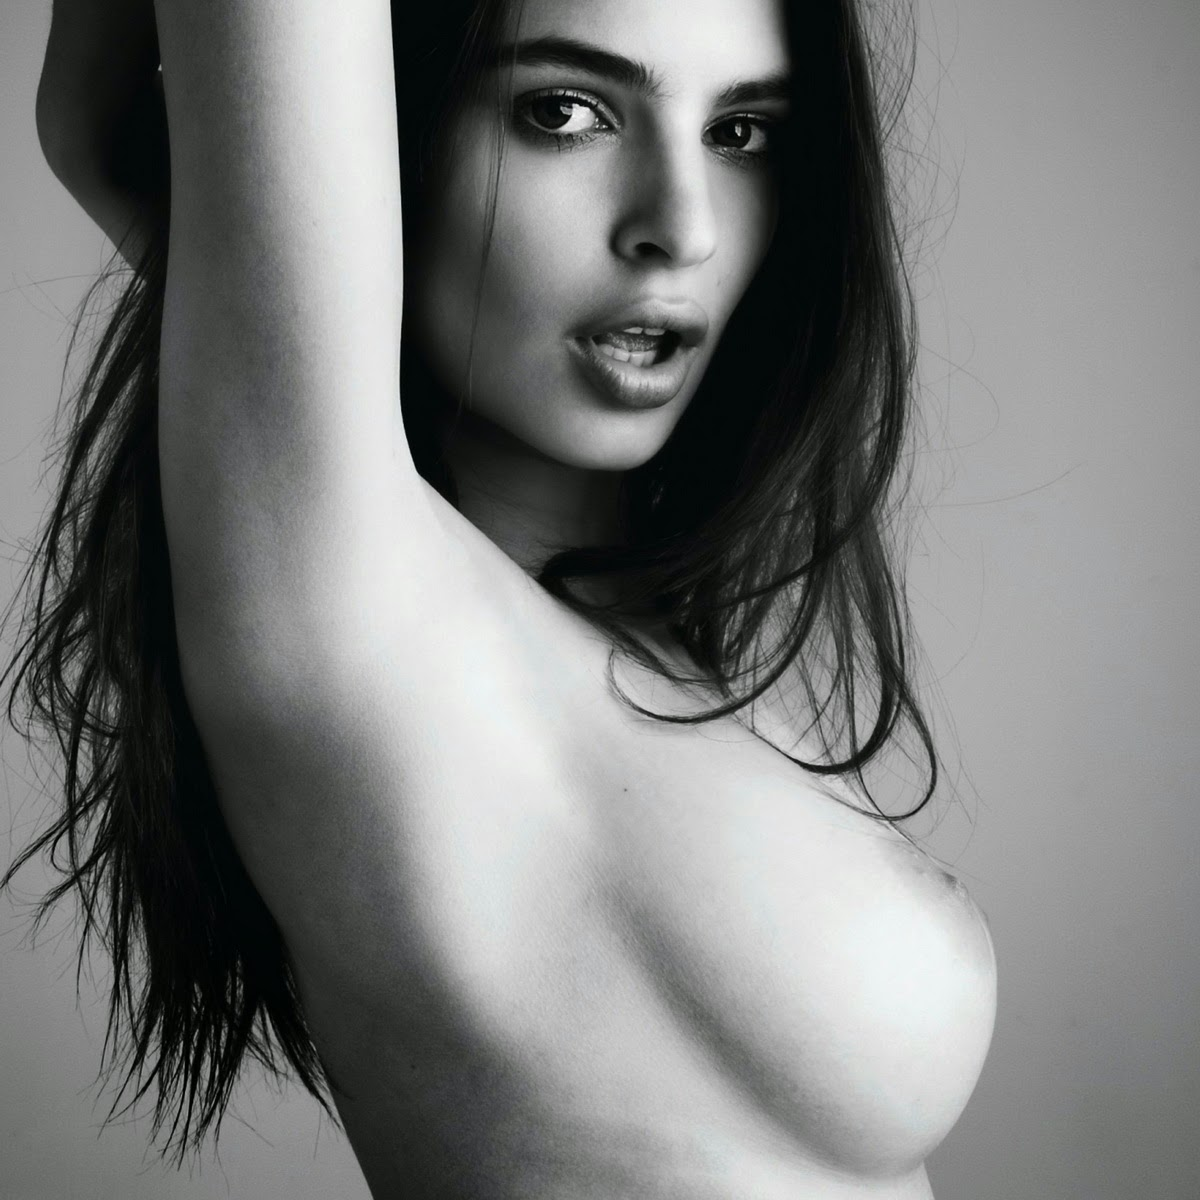 Beauty Celebrity: Emily Ratajkowski Nude In Treats Magazine 2012